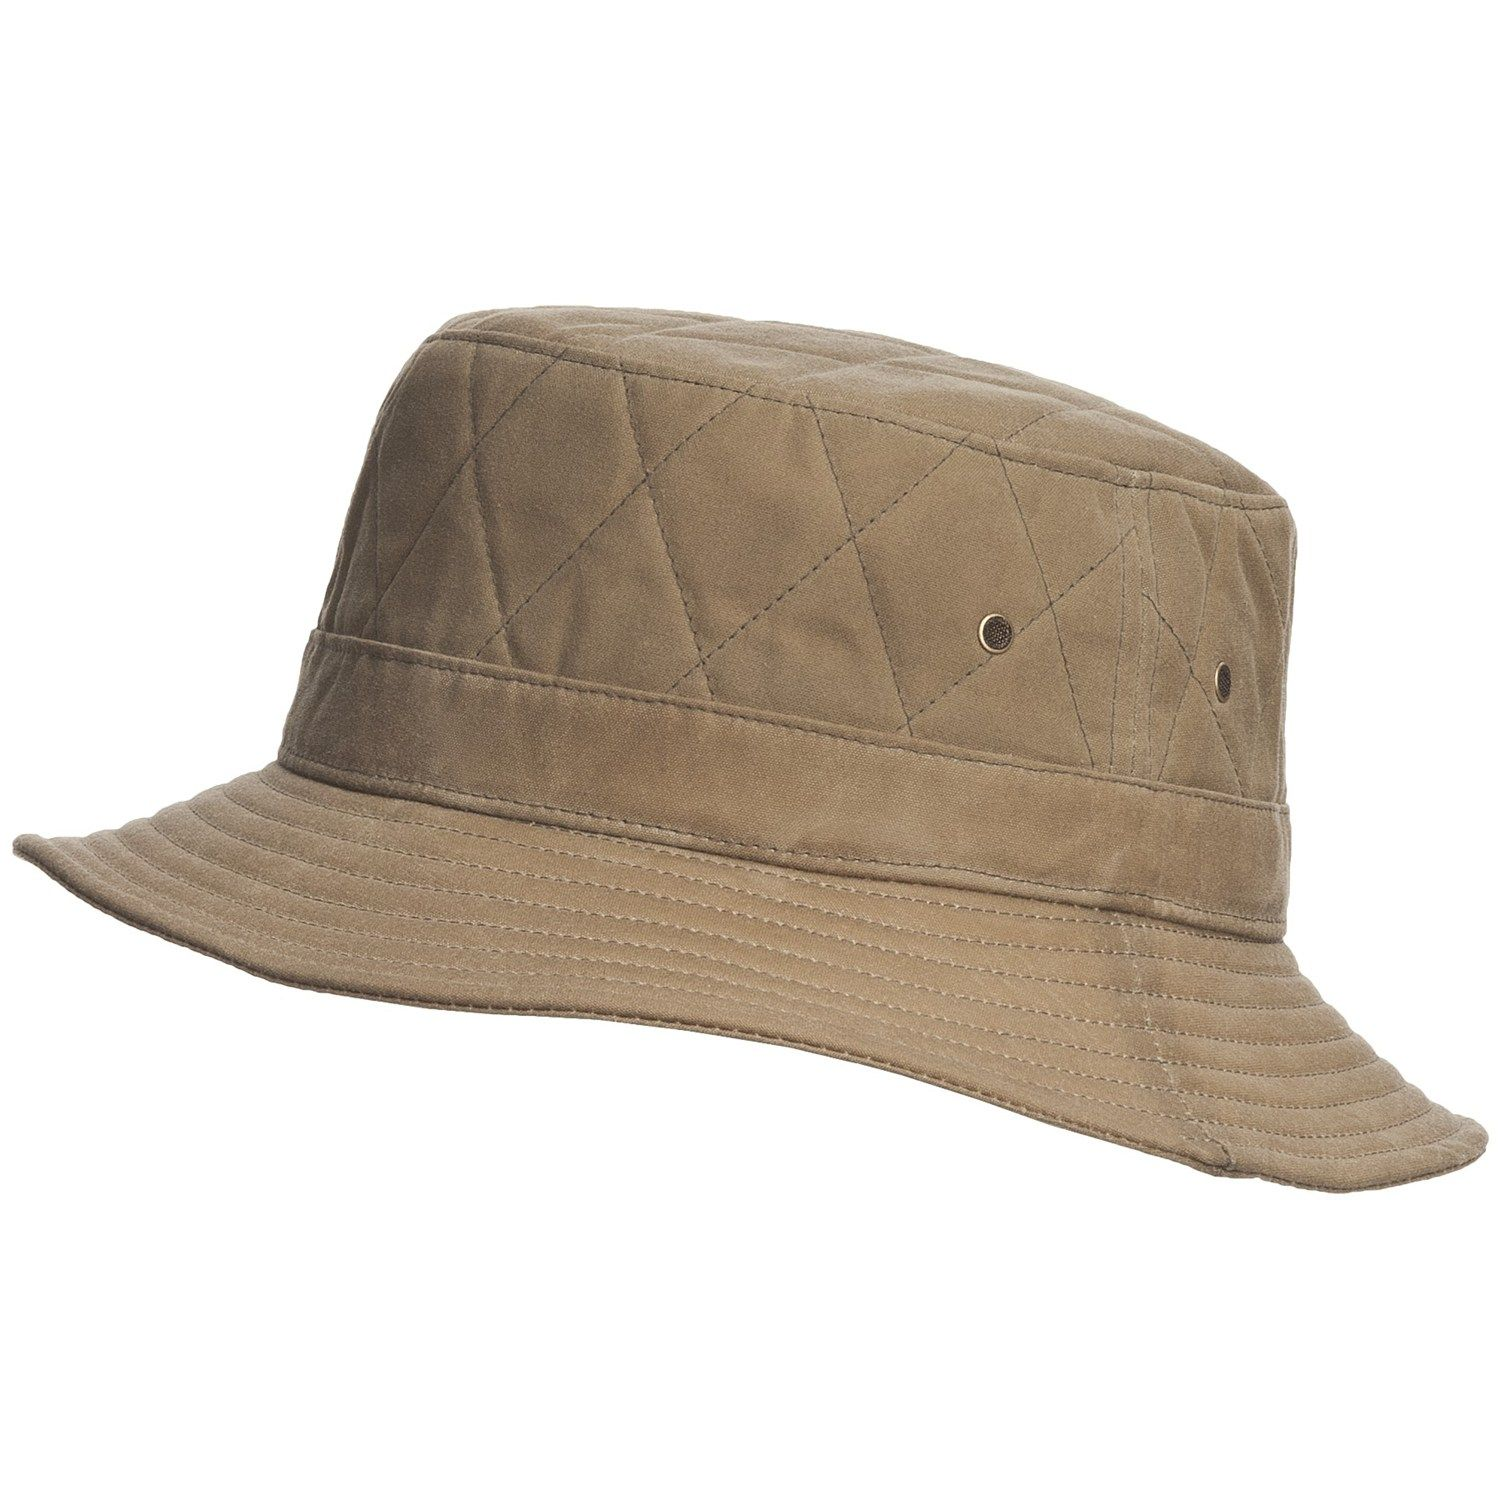 ff87745c Woolrich Bucket Hat - Cotton Oilcloth (For Men and Women) | SB ...